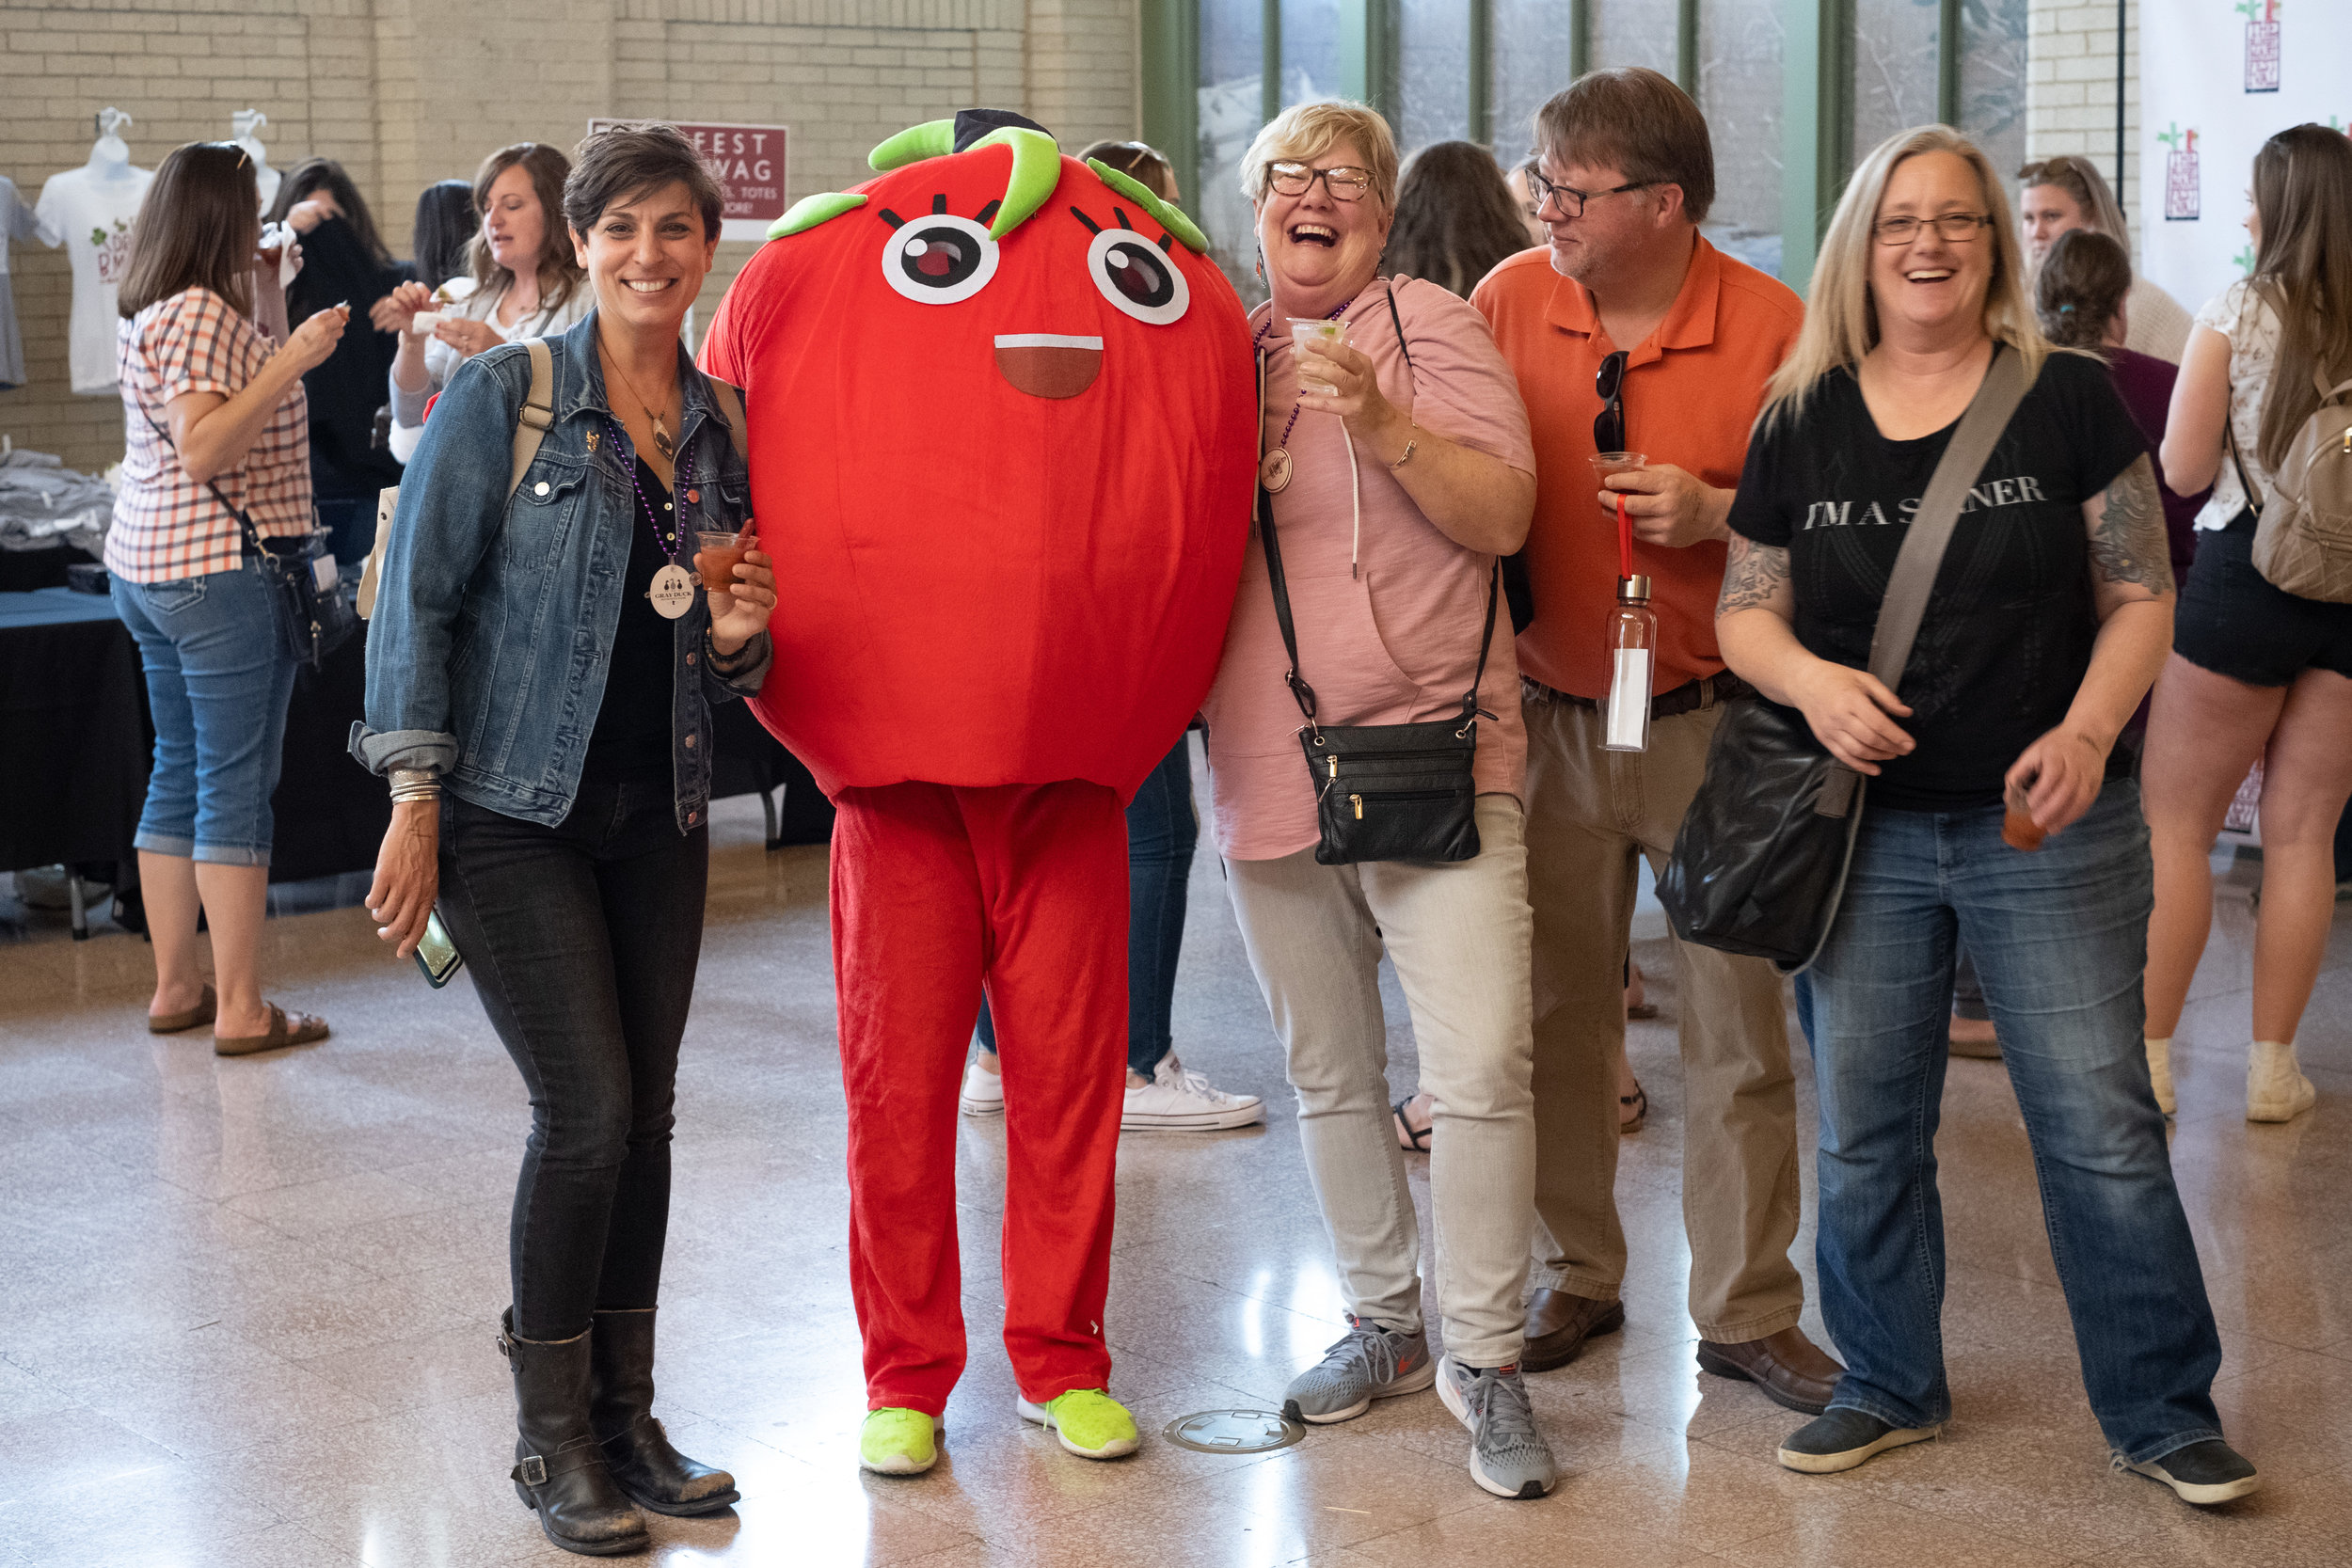 Laughing with the Tomato Person.jpg